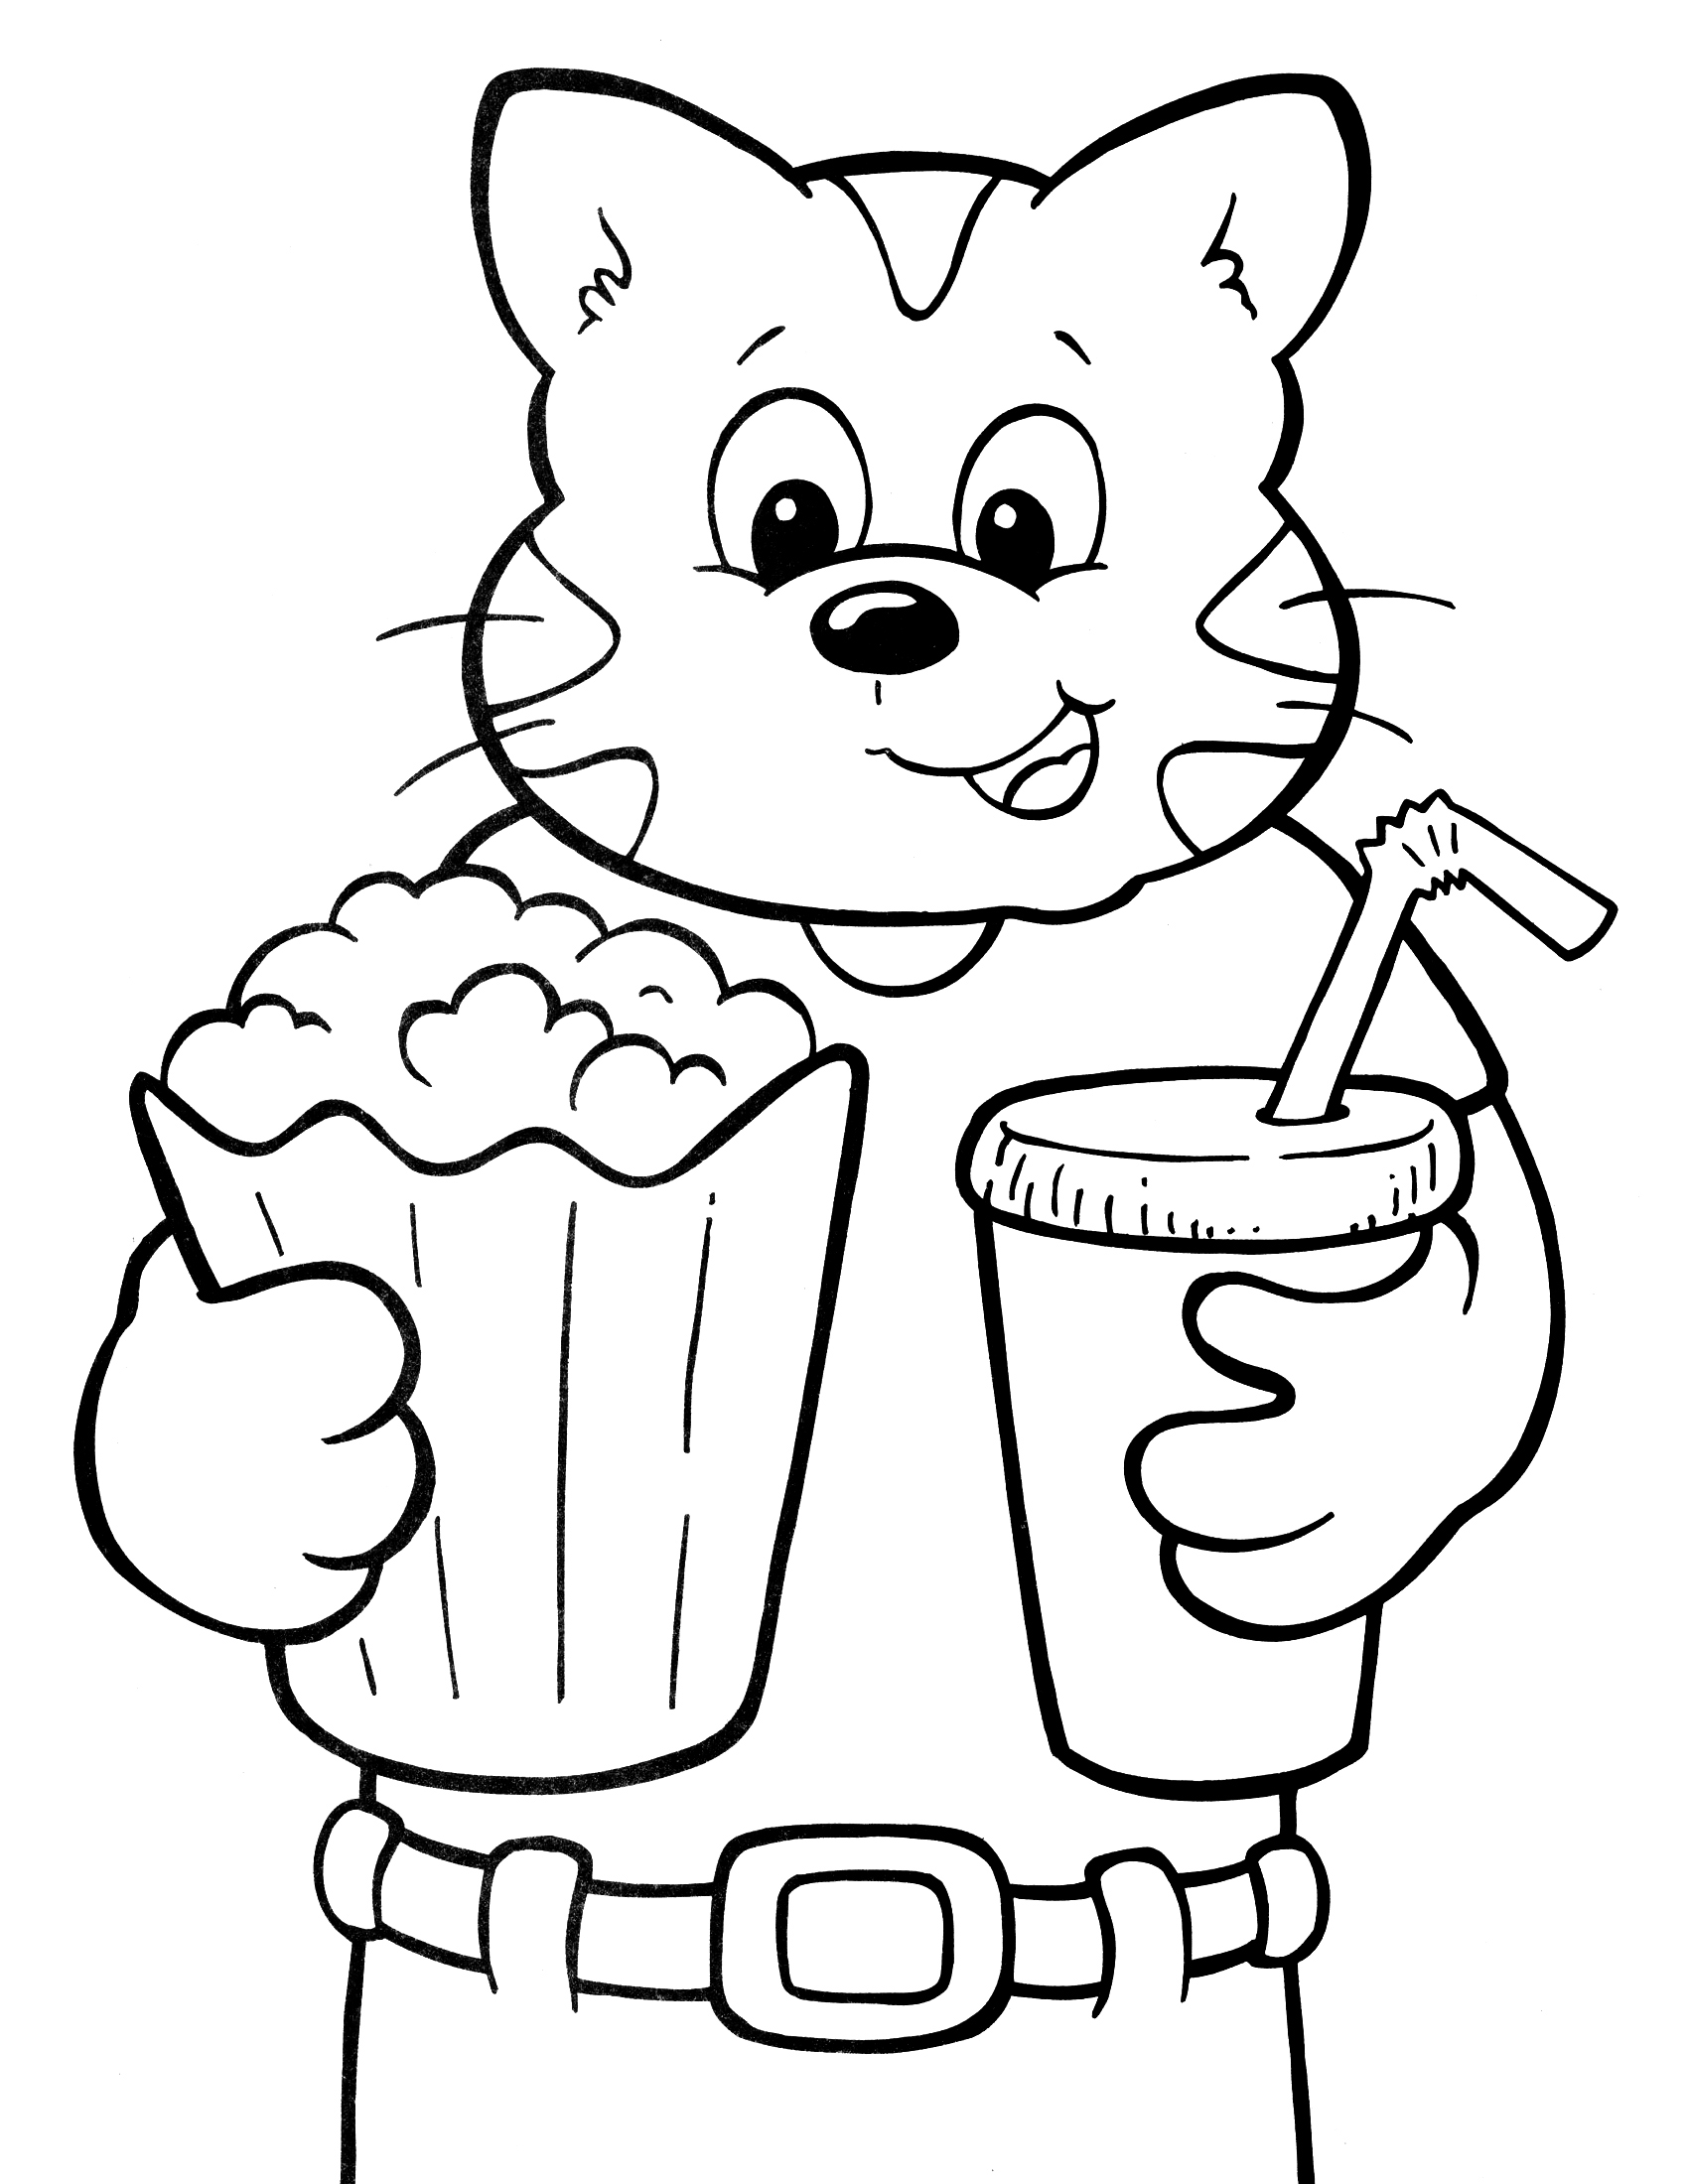 coloring pages from crayola - photo#33